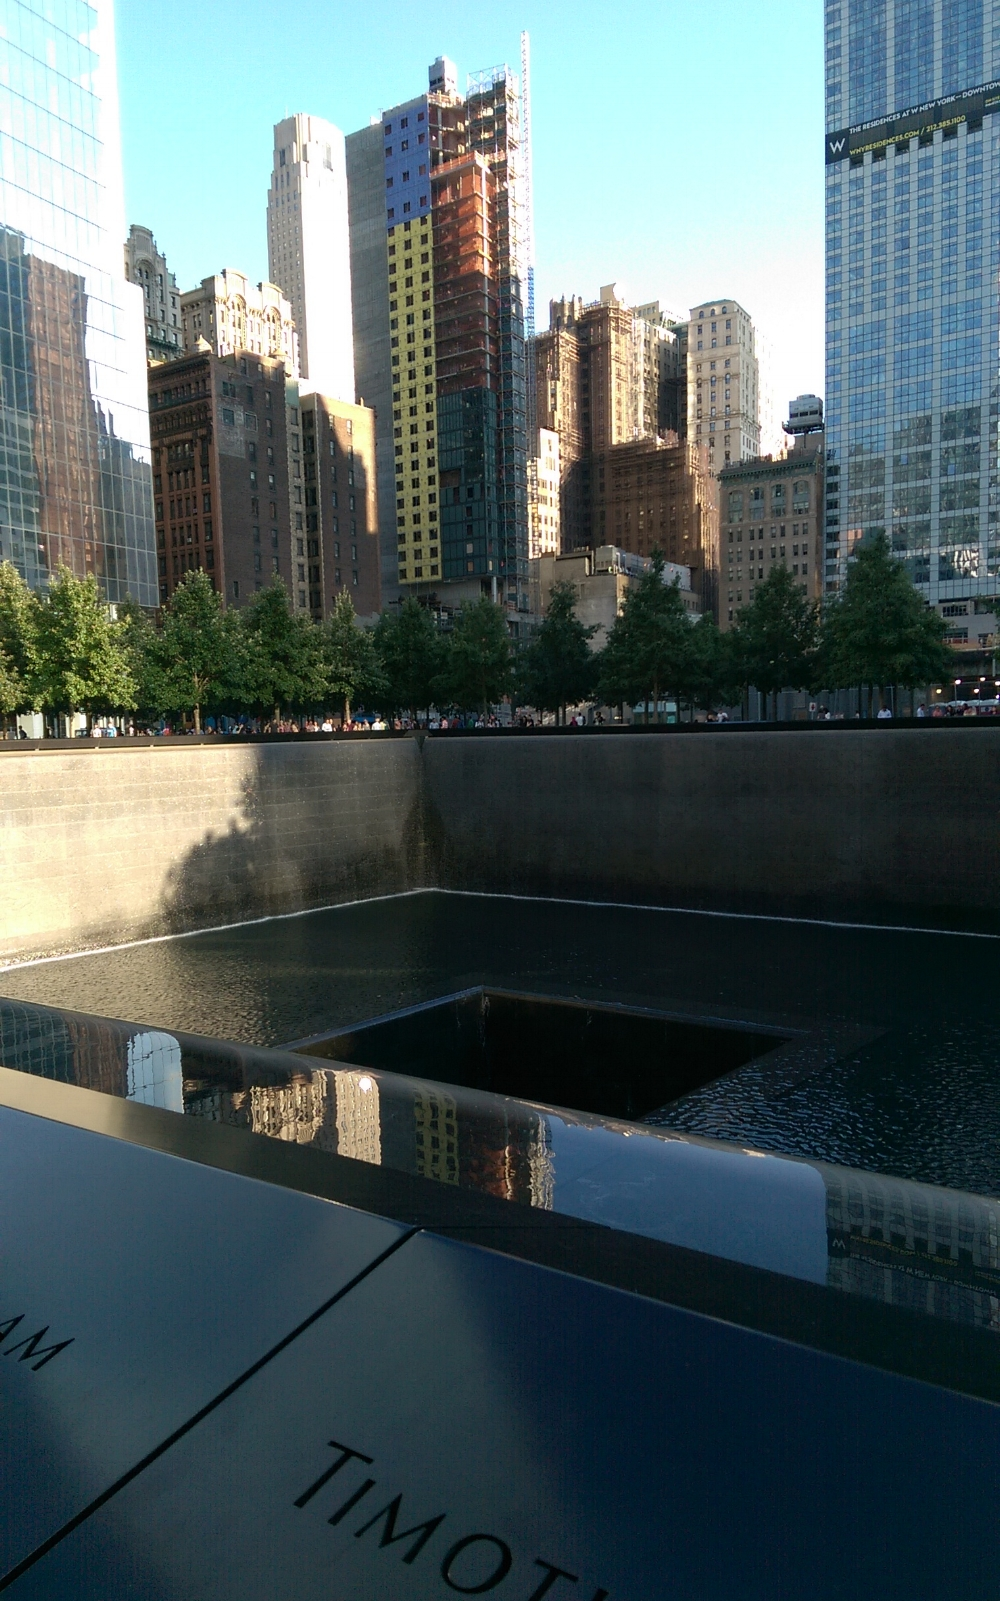 The South Pool at the National September 11 Memorial & Museum located in Lower Manhattan.